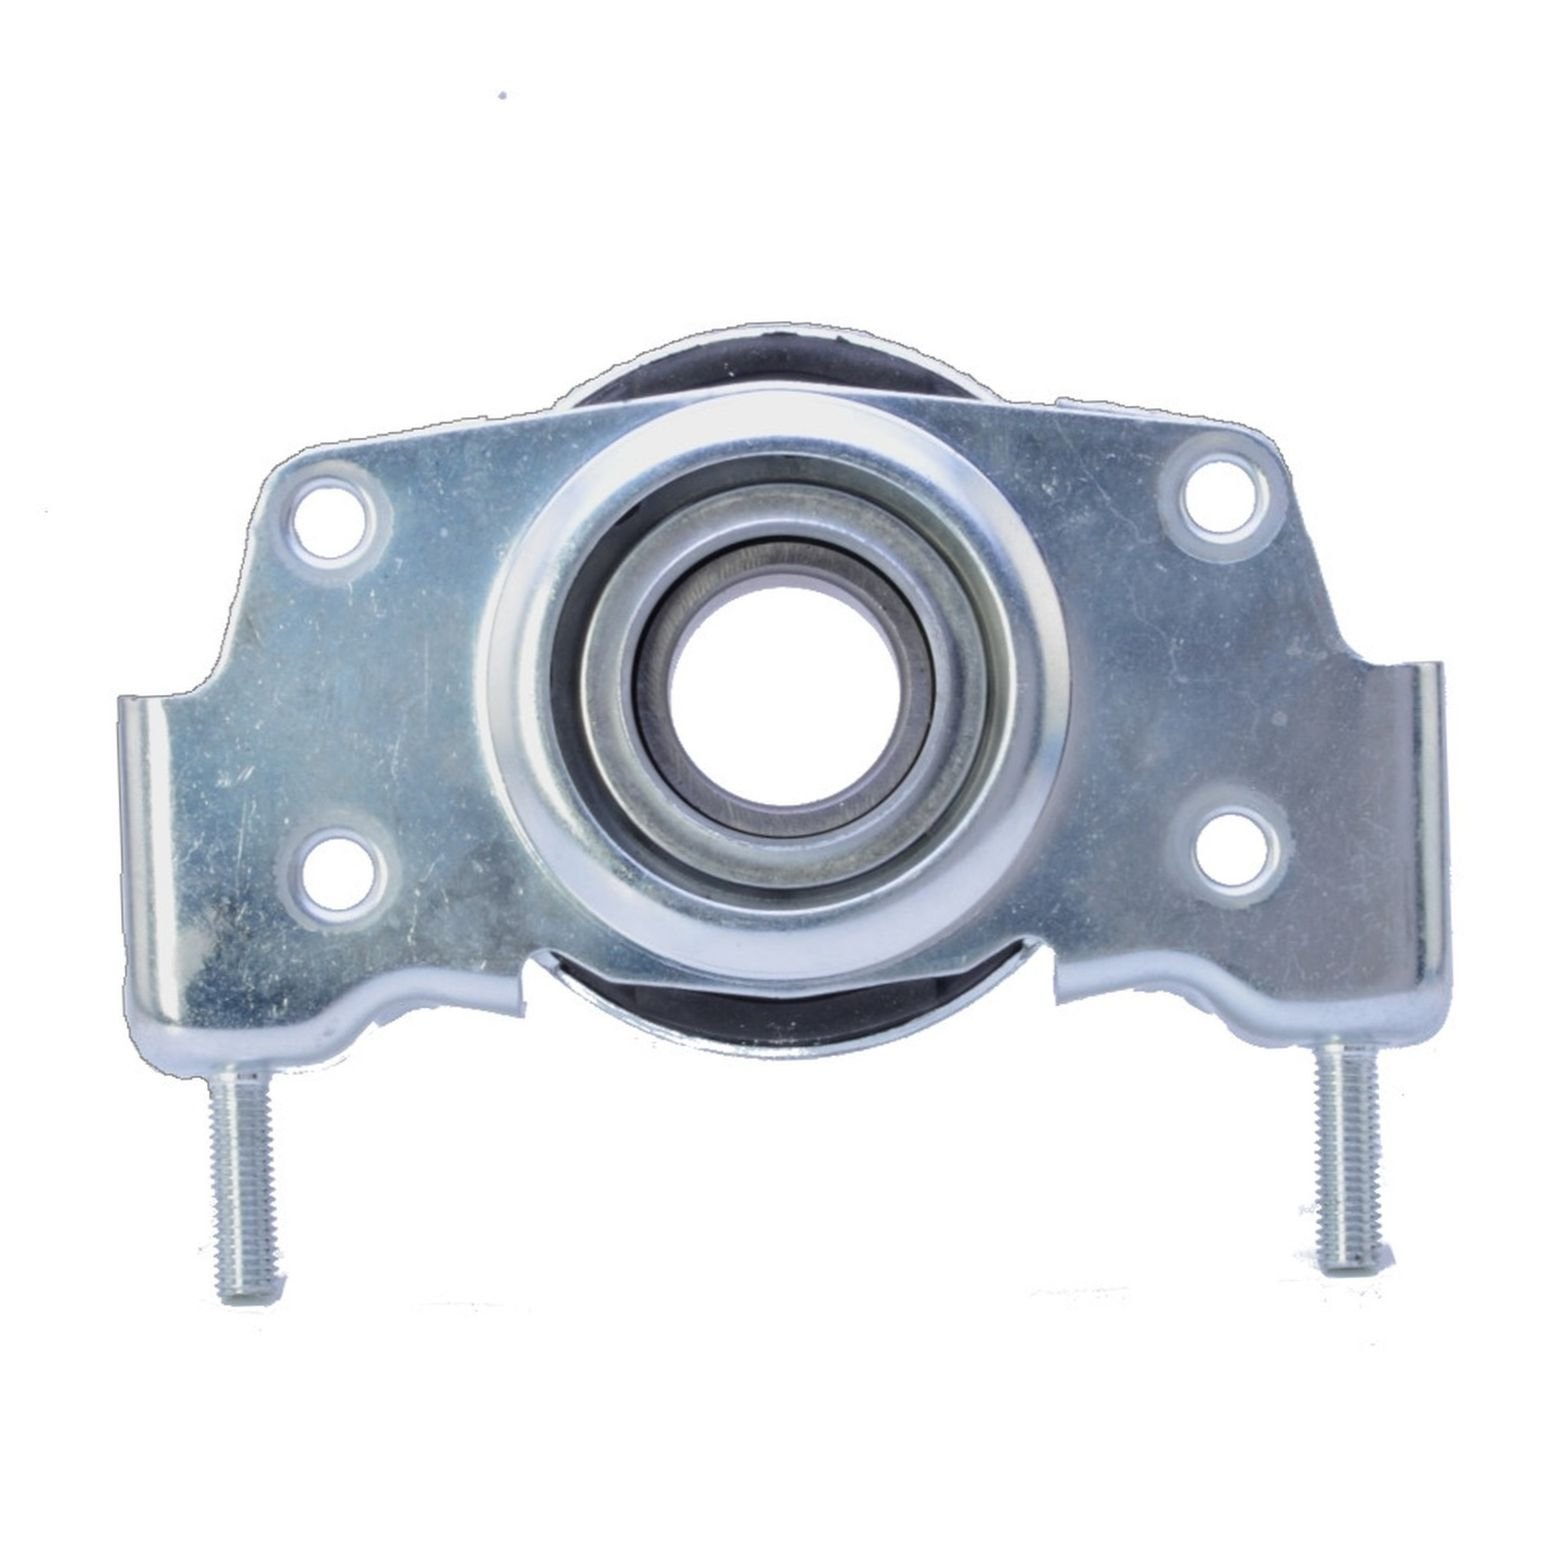 Onix Automotive N/A Drive Shaft Center Support Bearing OM6063